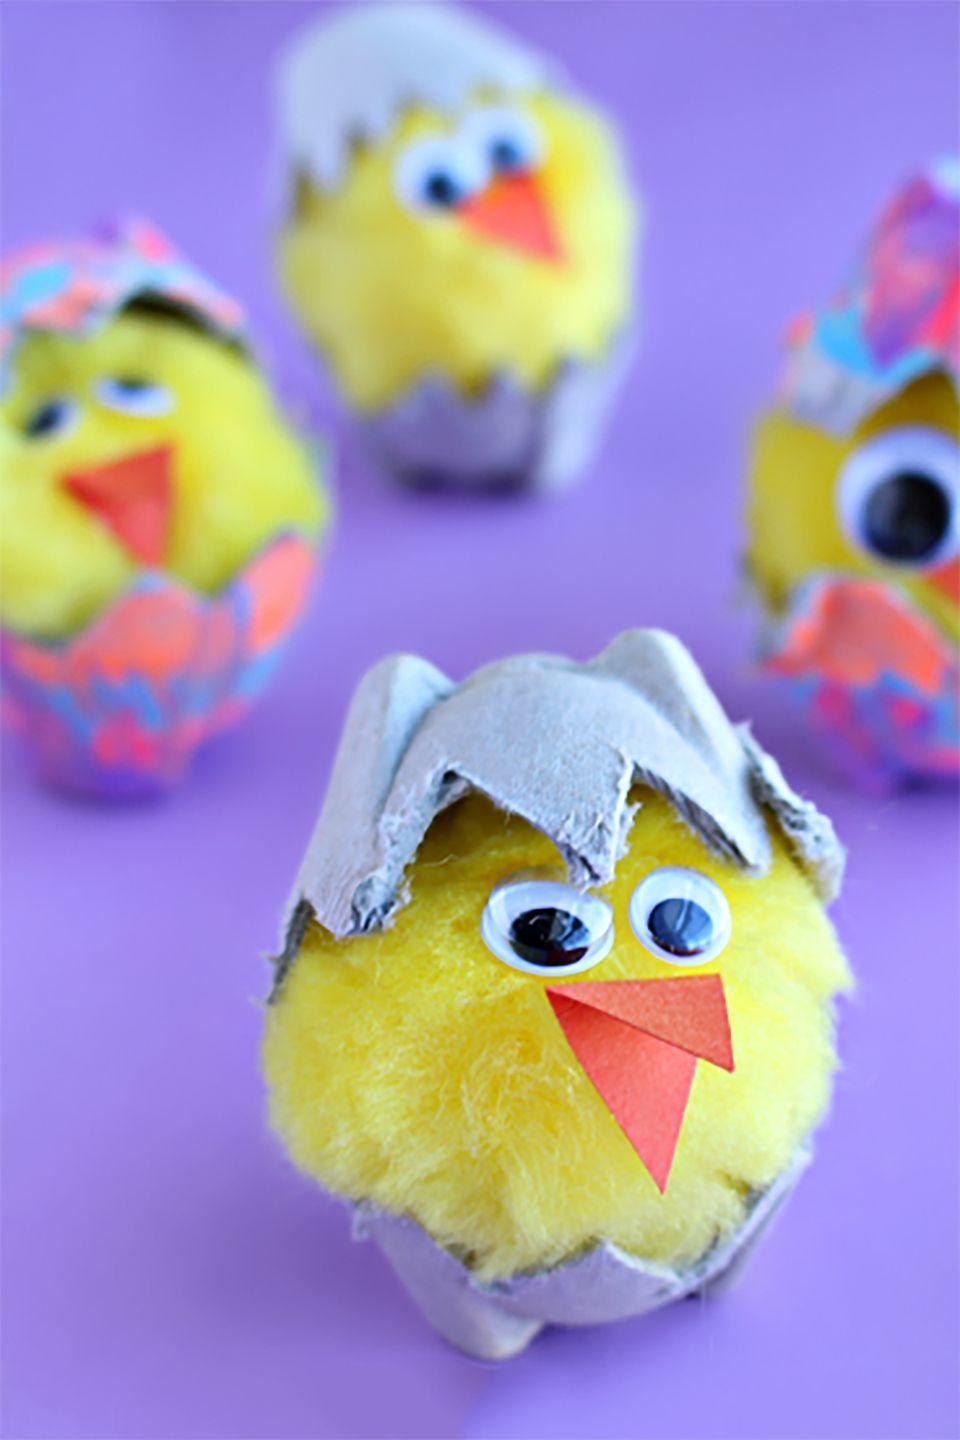 """<p>Paint egg cartons to make it look like the chicks are hatching from Easter eggs.</p><p><strong>Get the tutorial at <a href=""""http://www.craftymorning.com/egg-carton-hatching-chicks-kids-craft/"""" rel=""""nofollow noopener"""" target=""""_blank"""" data-ylk=""""slk:Crafty Morning"""" class=""""link rapid-noclick-resp"""">Crafty Morning</a>. </strong></p>"""